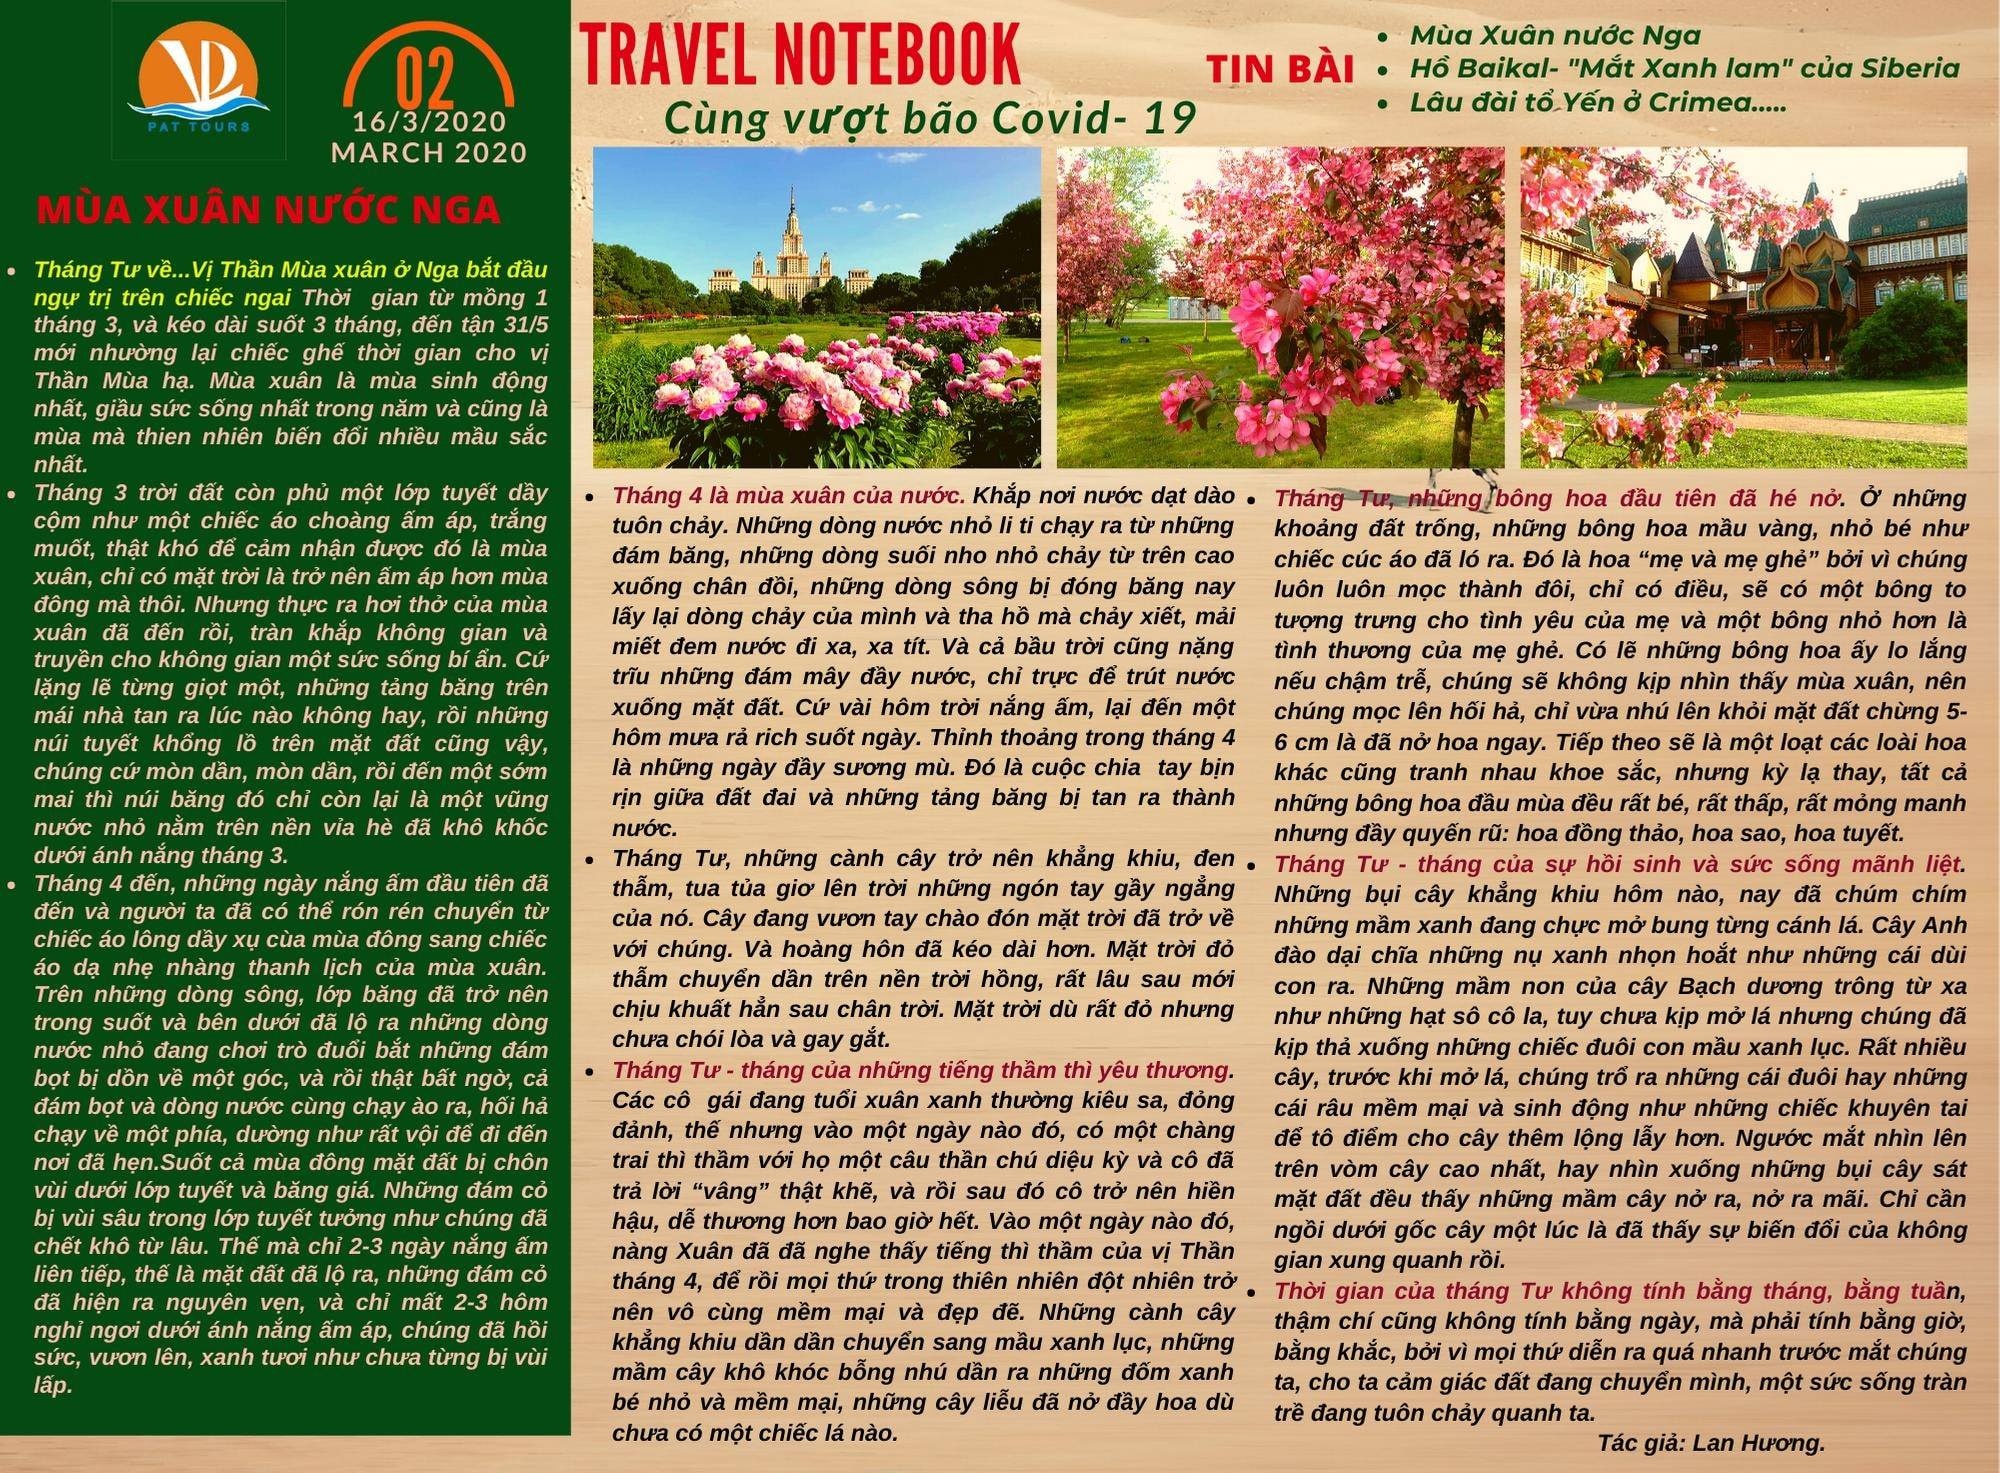 TRAVEL NOTEBOOK -số 2 ngày 16/3/2020